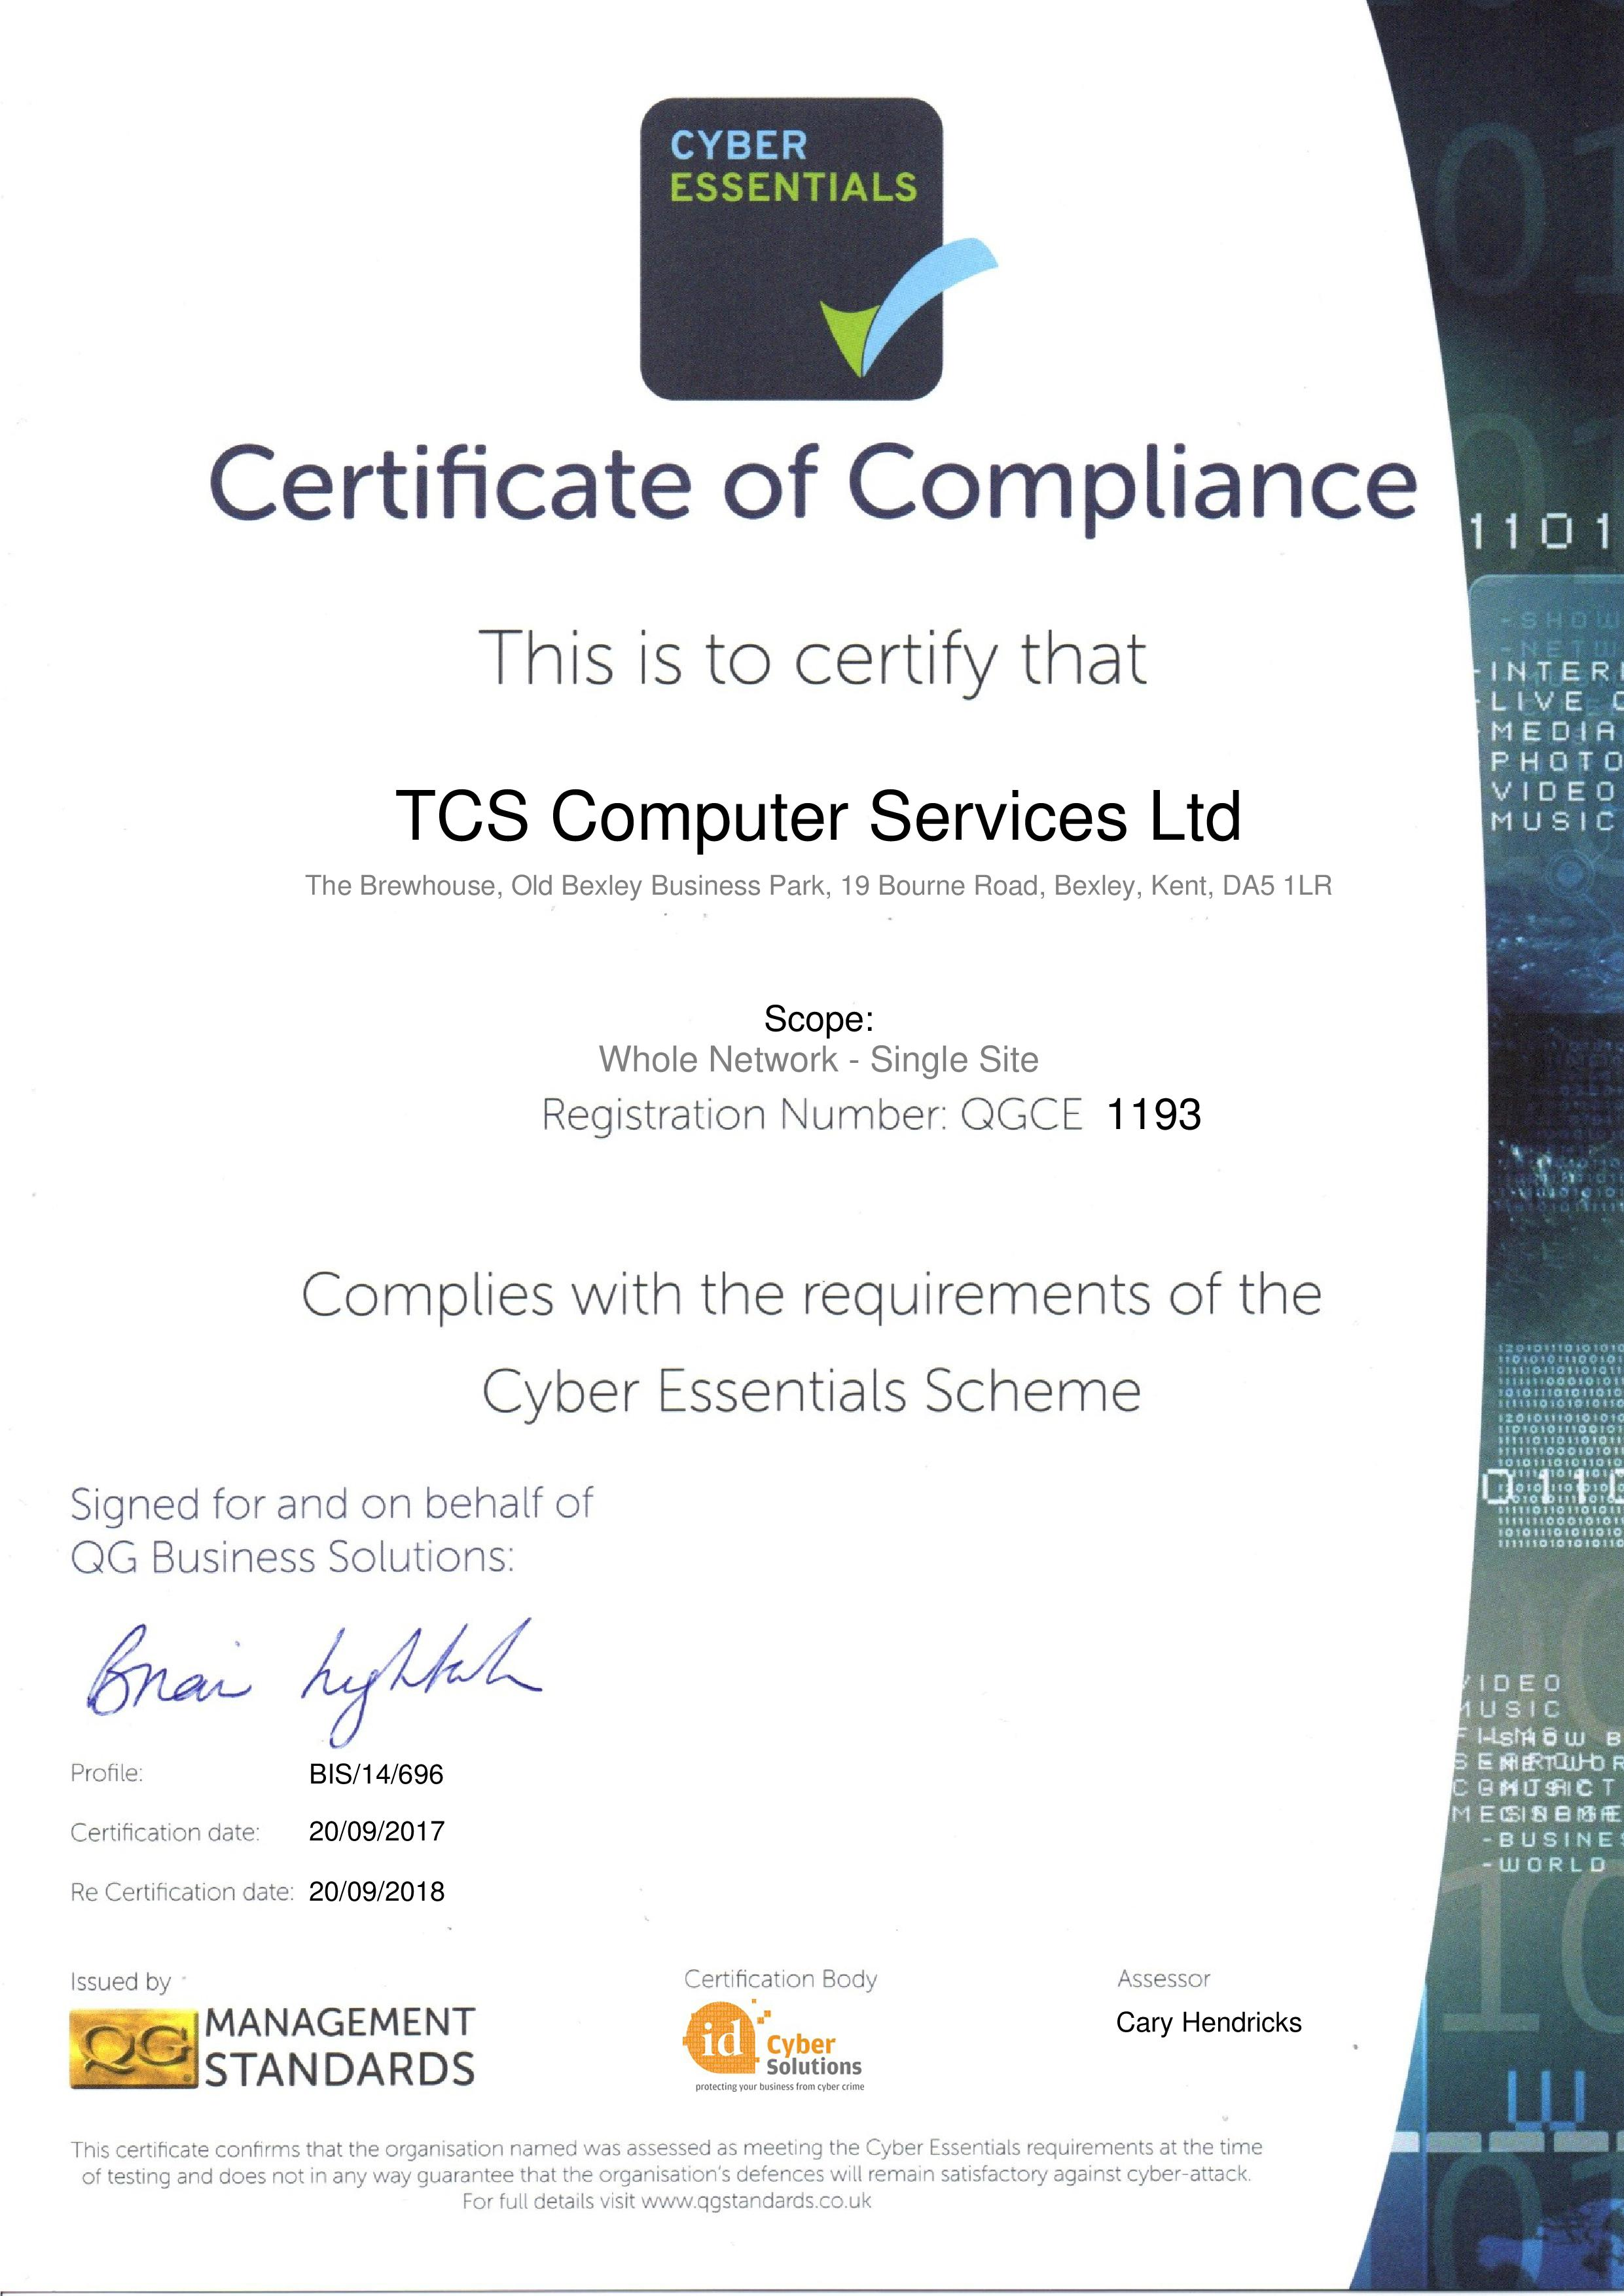 QGCE1193 TCS Computer Services Ltd